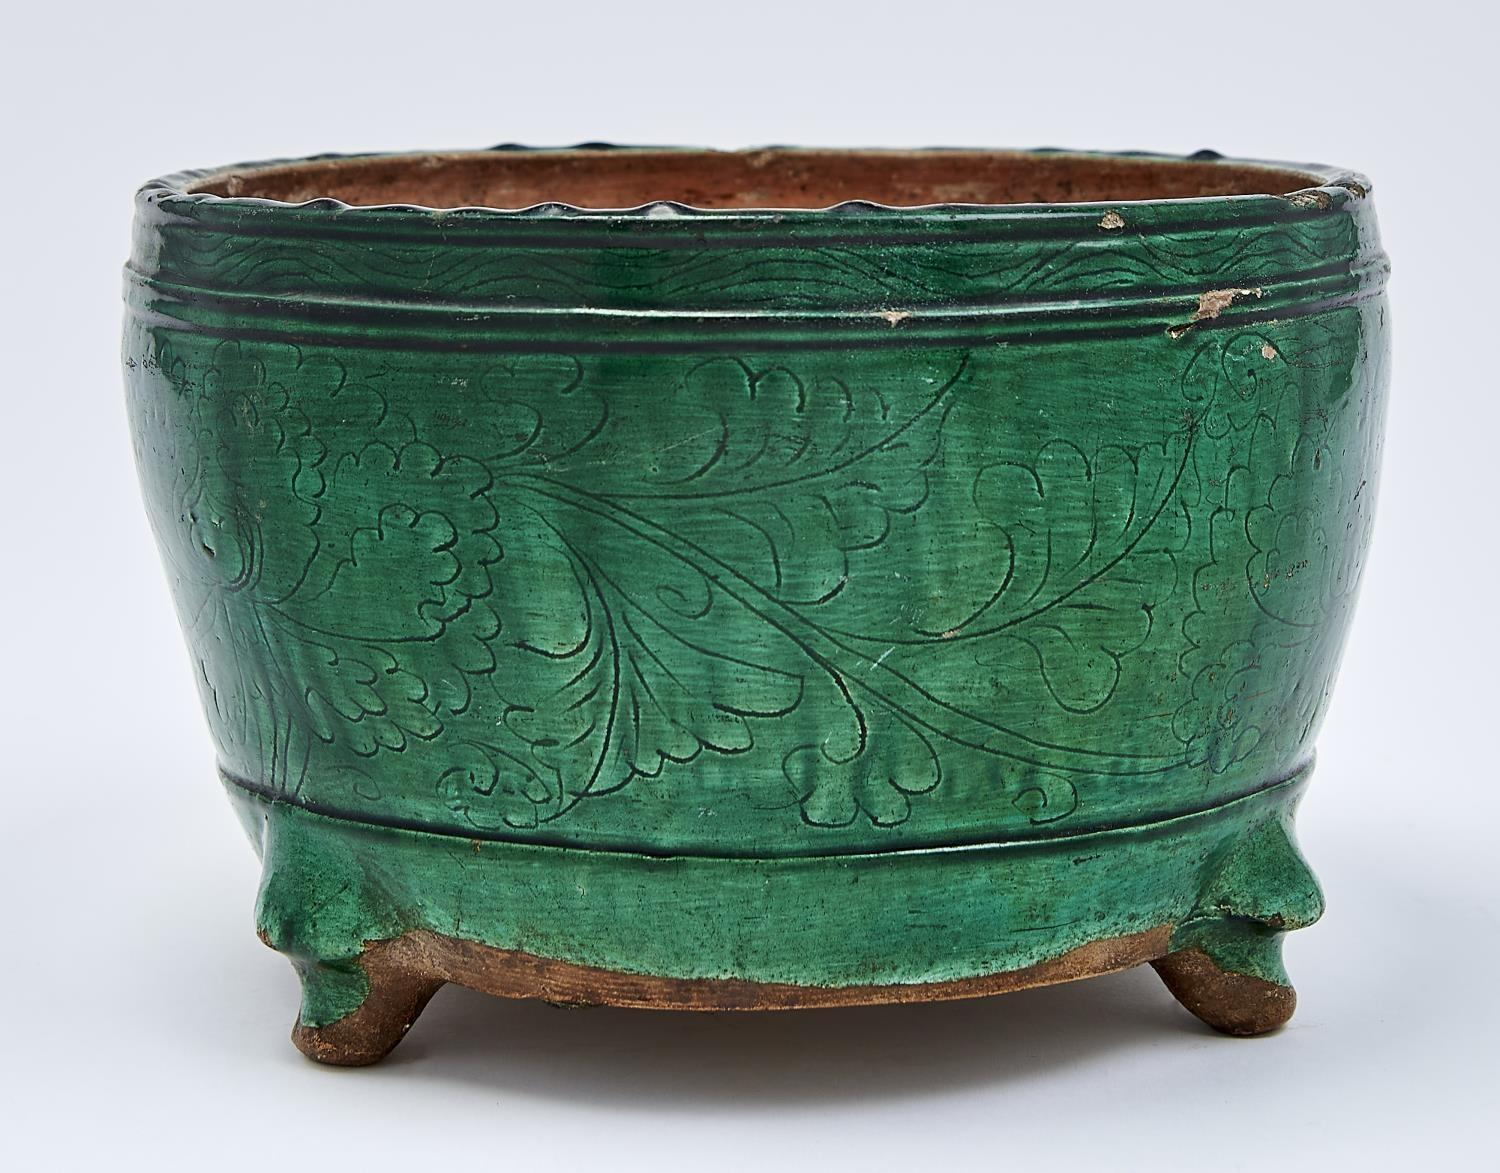 A CHINESE GREEN GLAZED BISCUIT TRIPOD CENSER, MING DYNASTY, EARLY 17TH C, THE ROUNDED SIDES